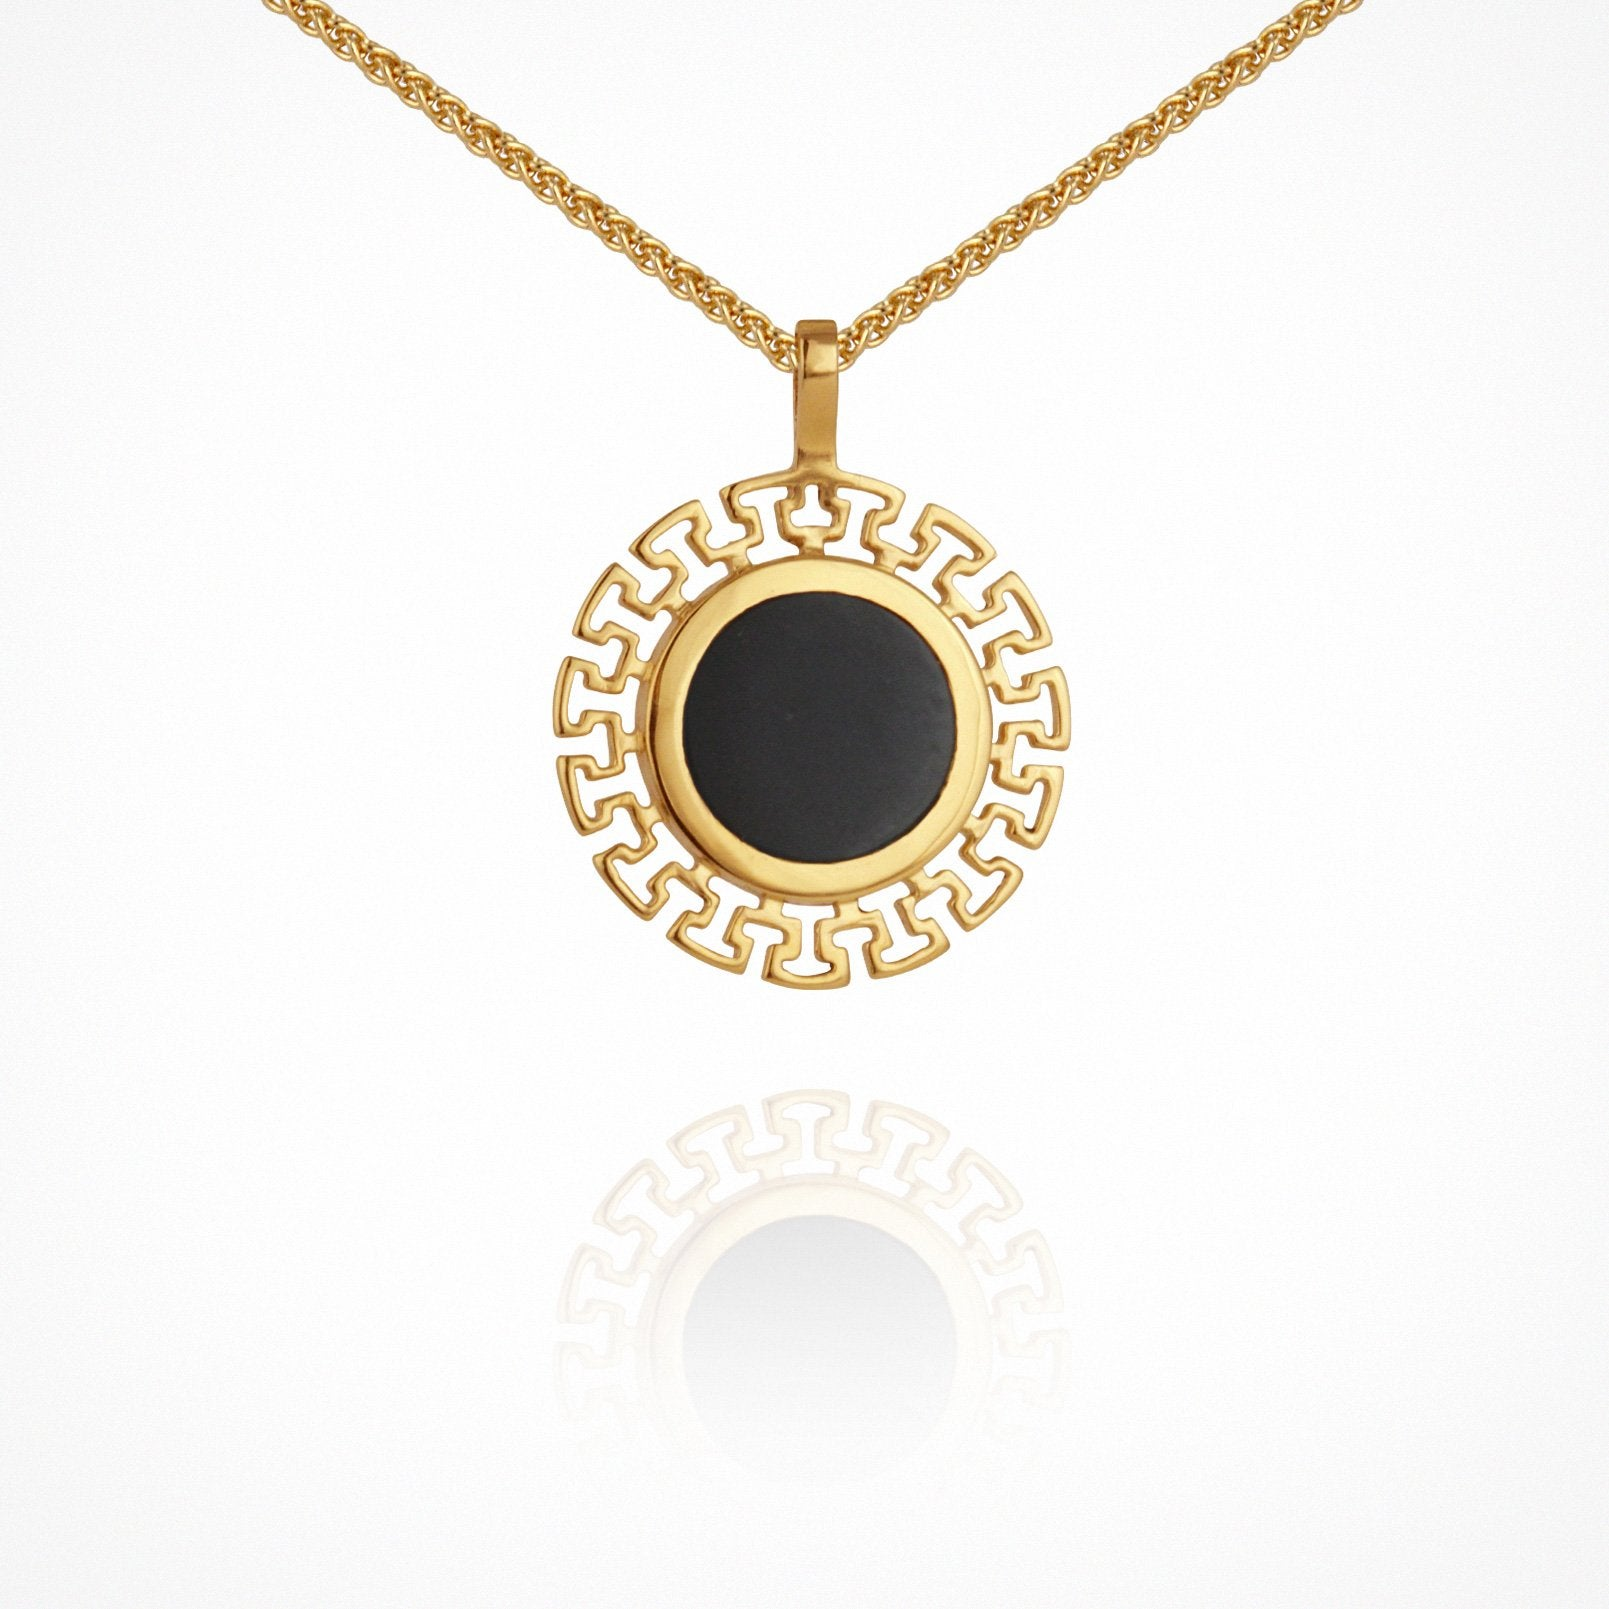 Kosmos Necklace - Gold with Onyx